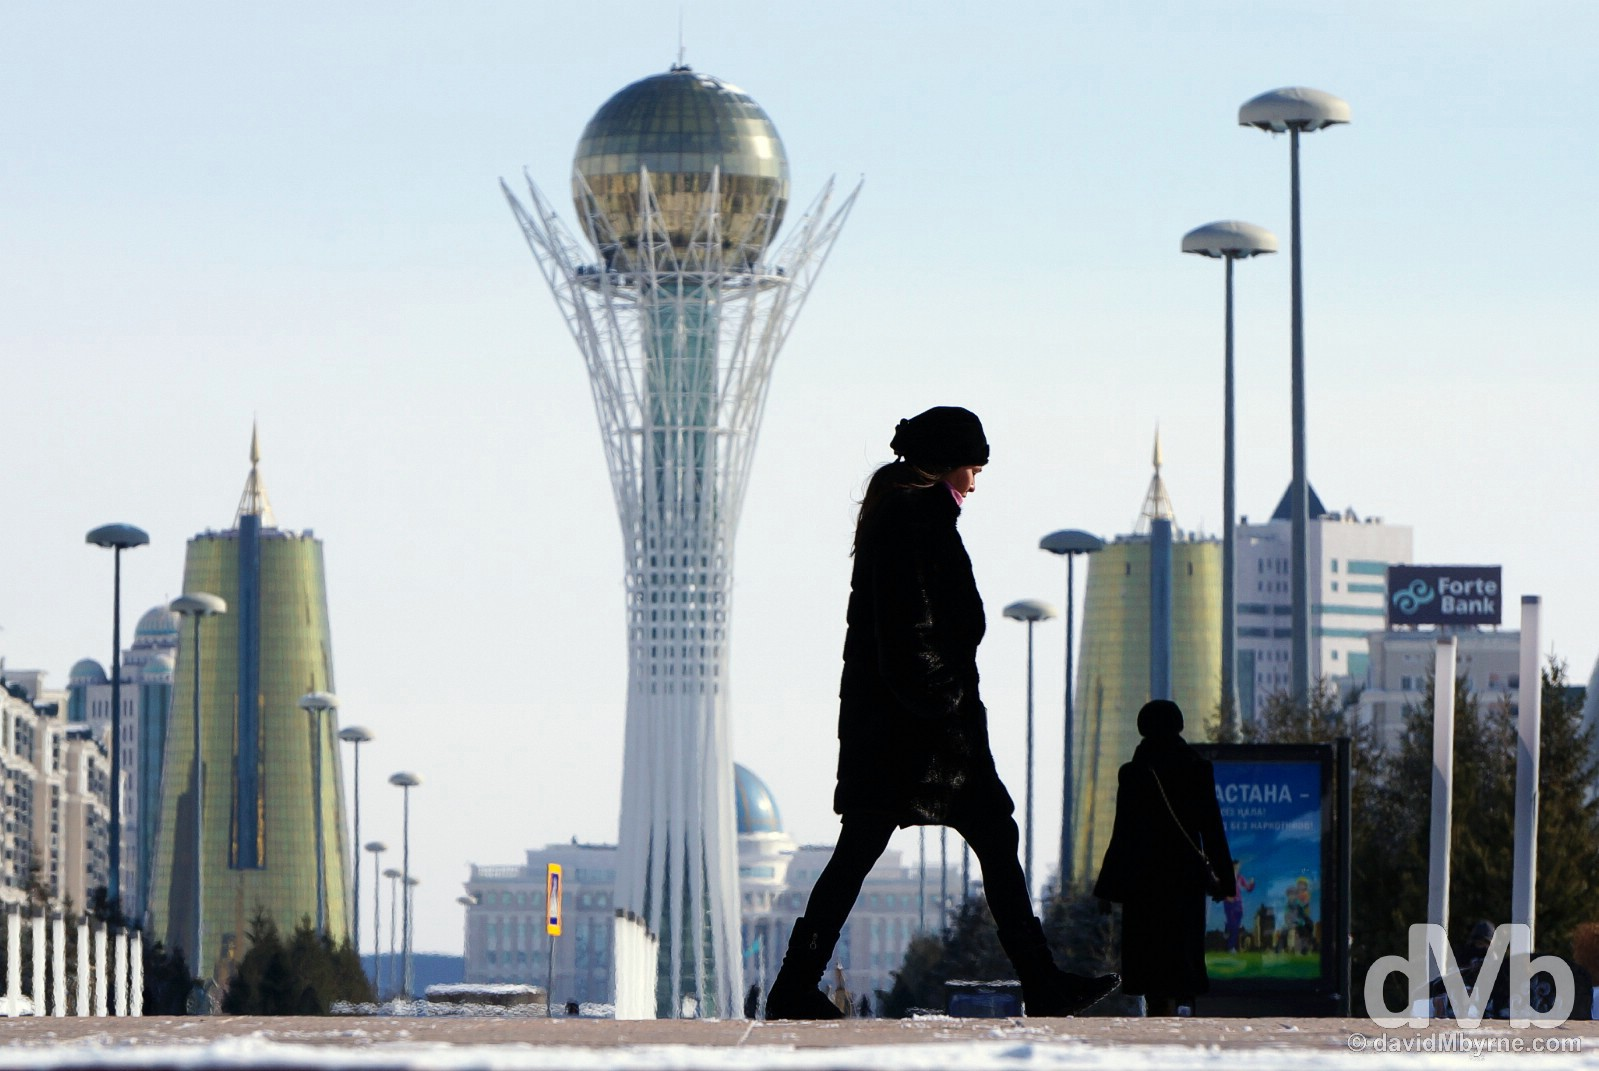 Looking east up Nurzhol Bulvar, the 2 kilometer long governmental & monumental zone in Astana, Kazakhstan. February 18, 2015.